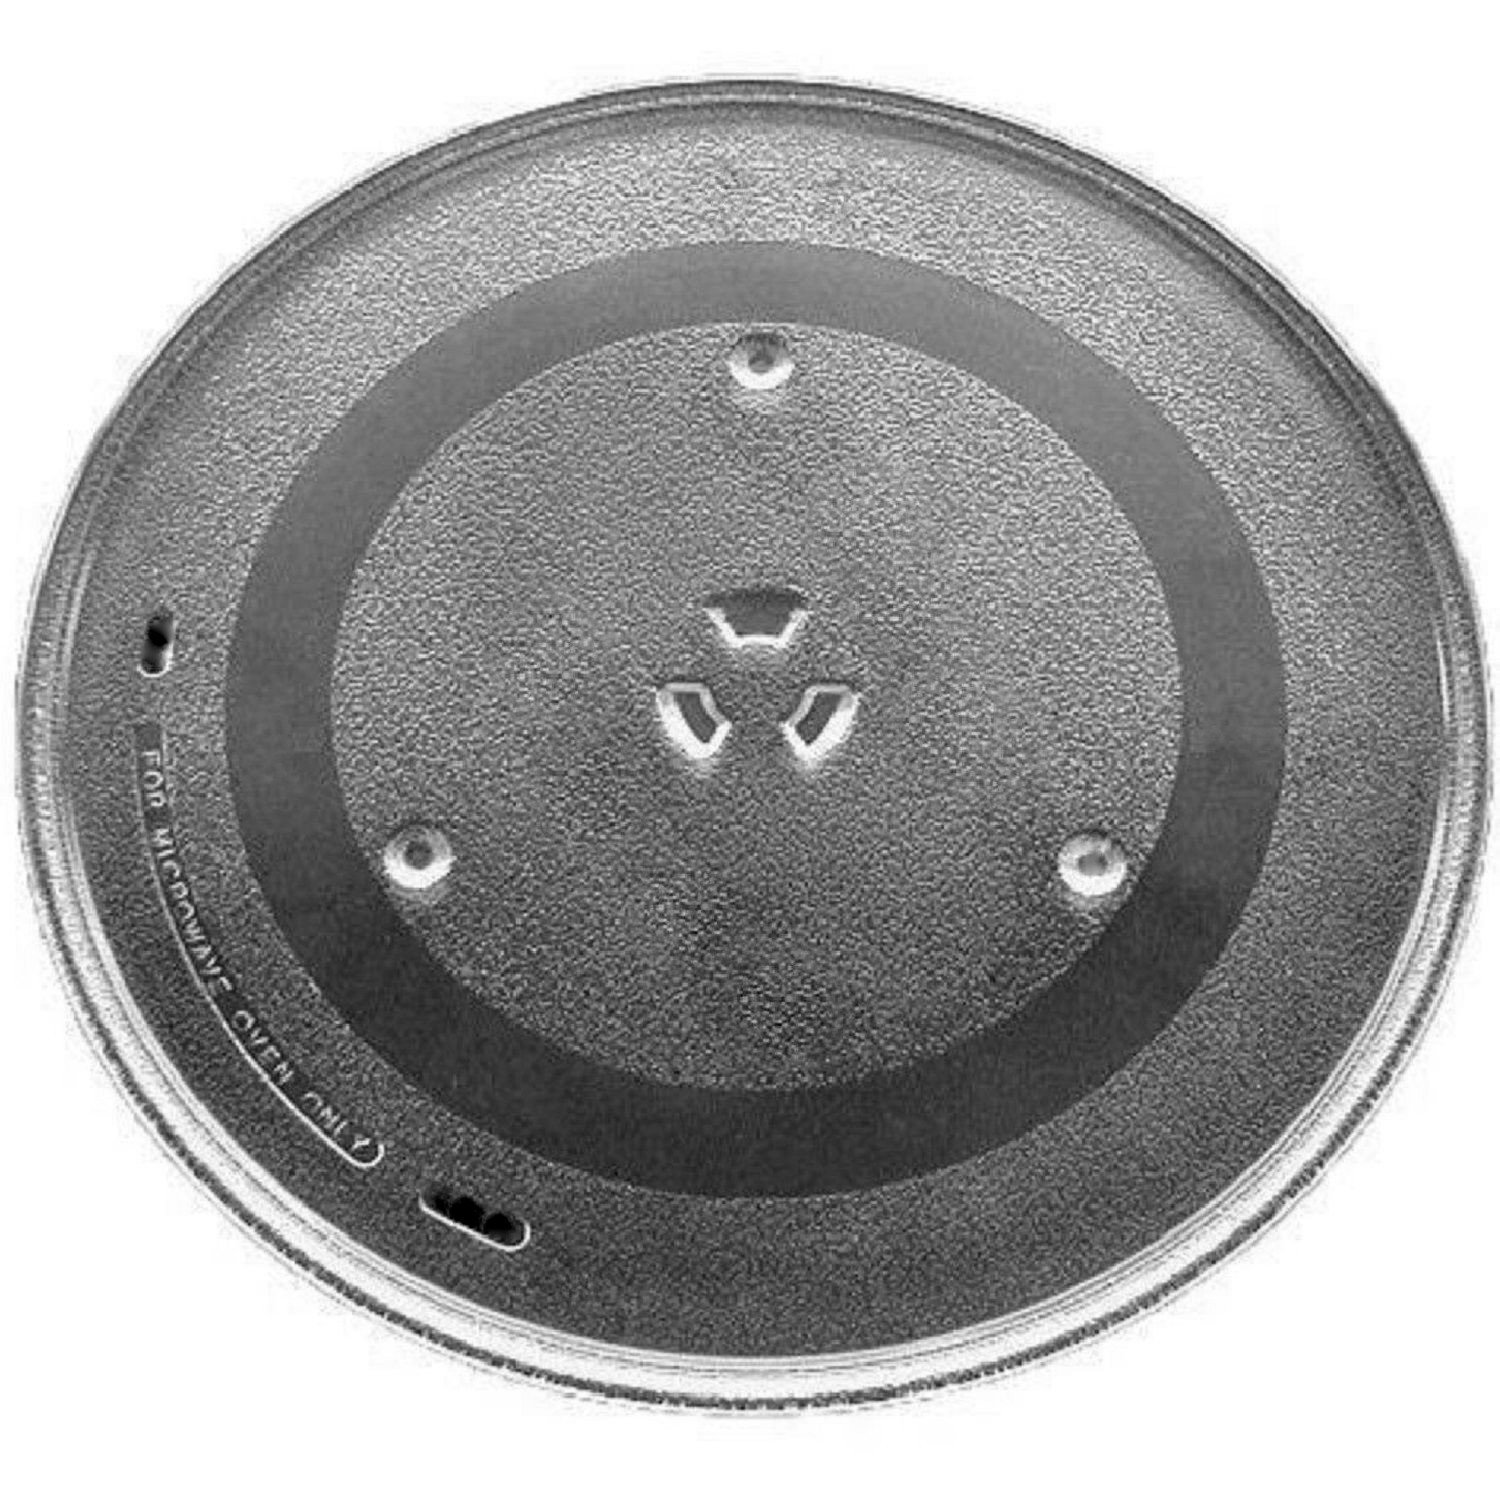 5304472062 Frigidaire Microwave O E M Glass Turntable Tray Plate Ge Microwave Best Appliances Glass